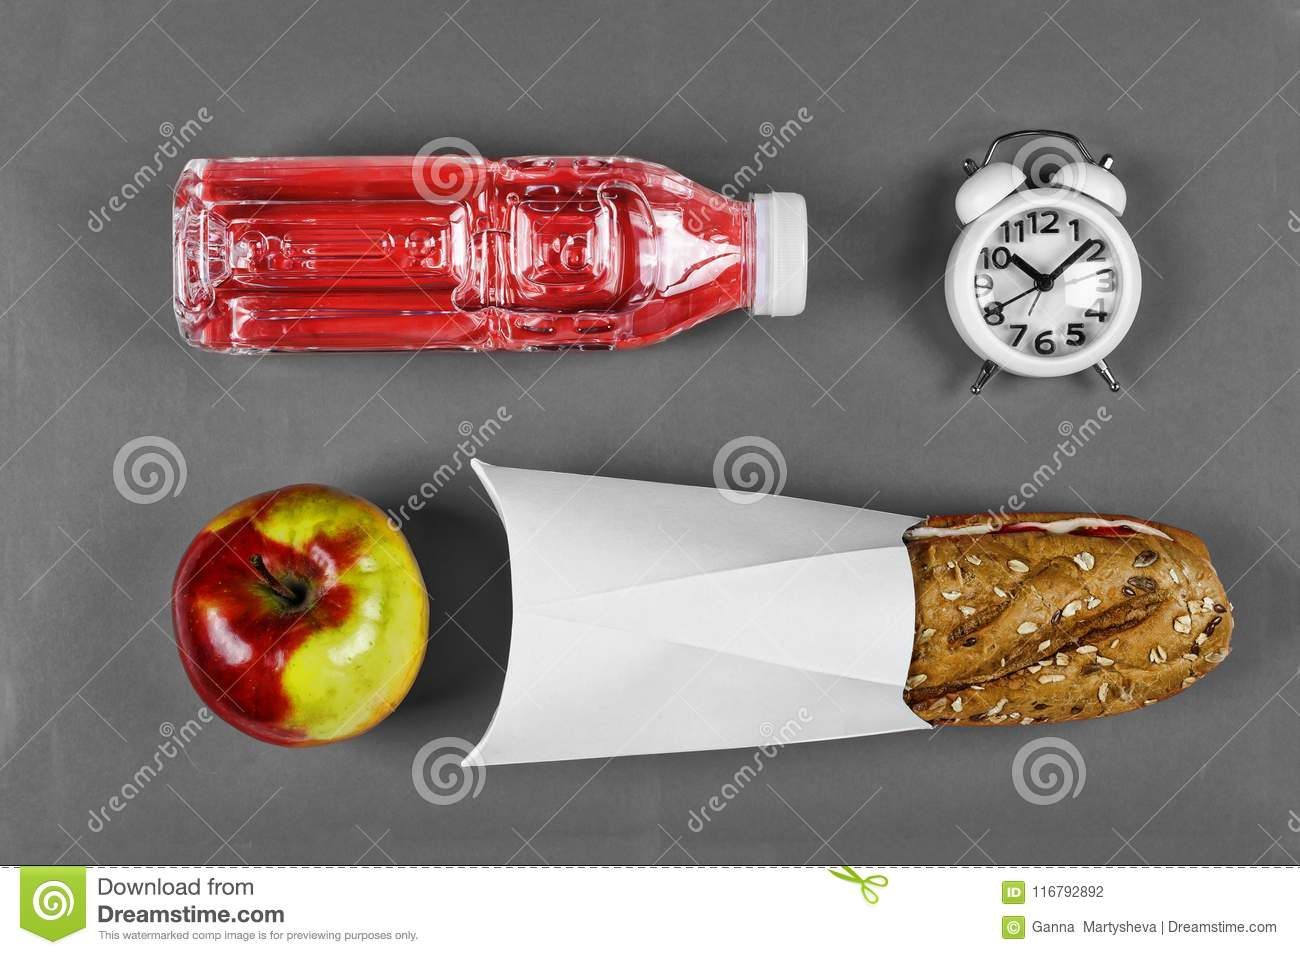 School, snack, Healthy food concept, sandwich, lunch, meal, Flat lay composition, environmentally products